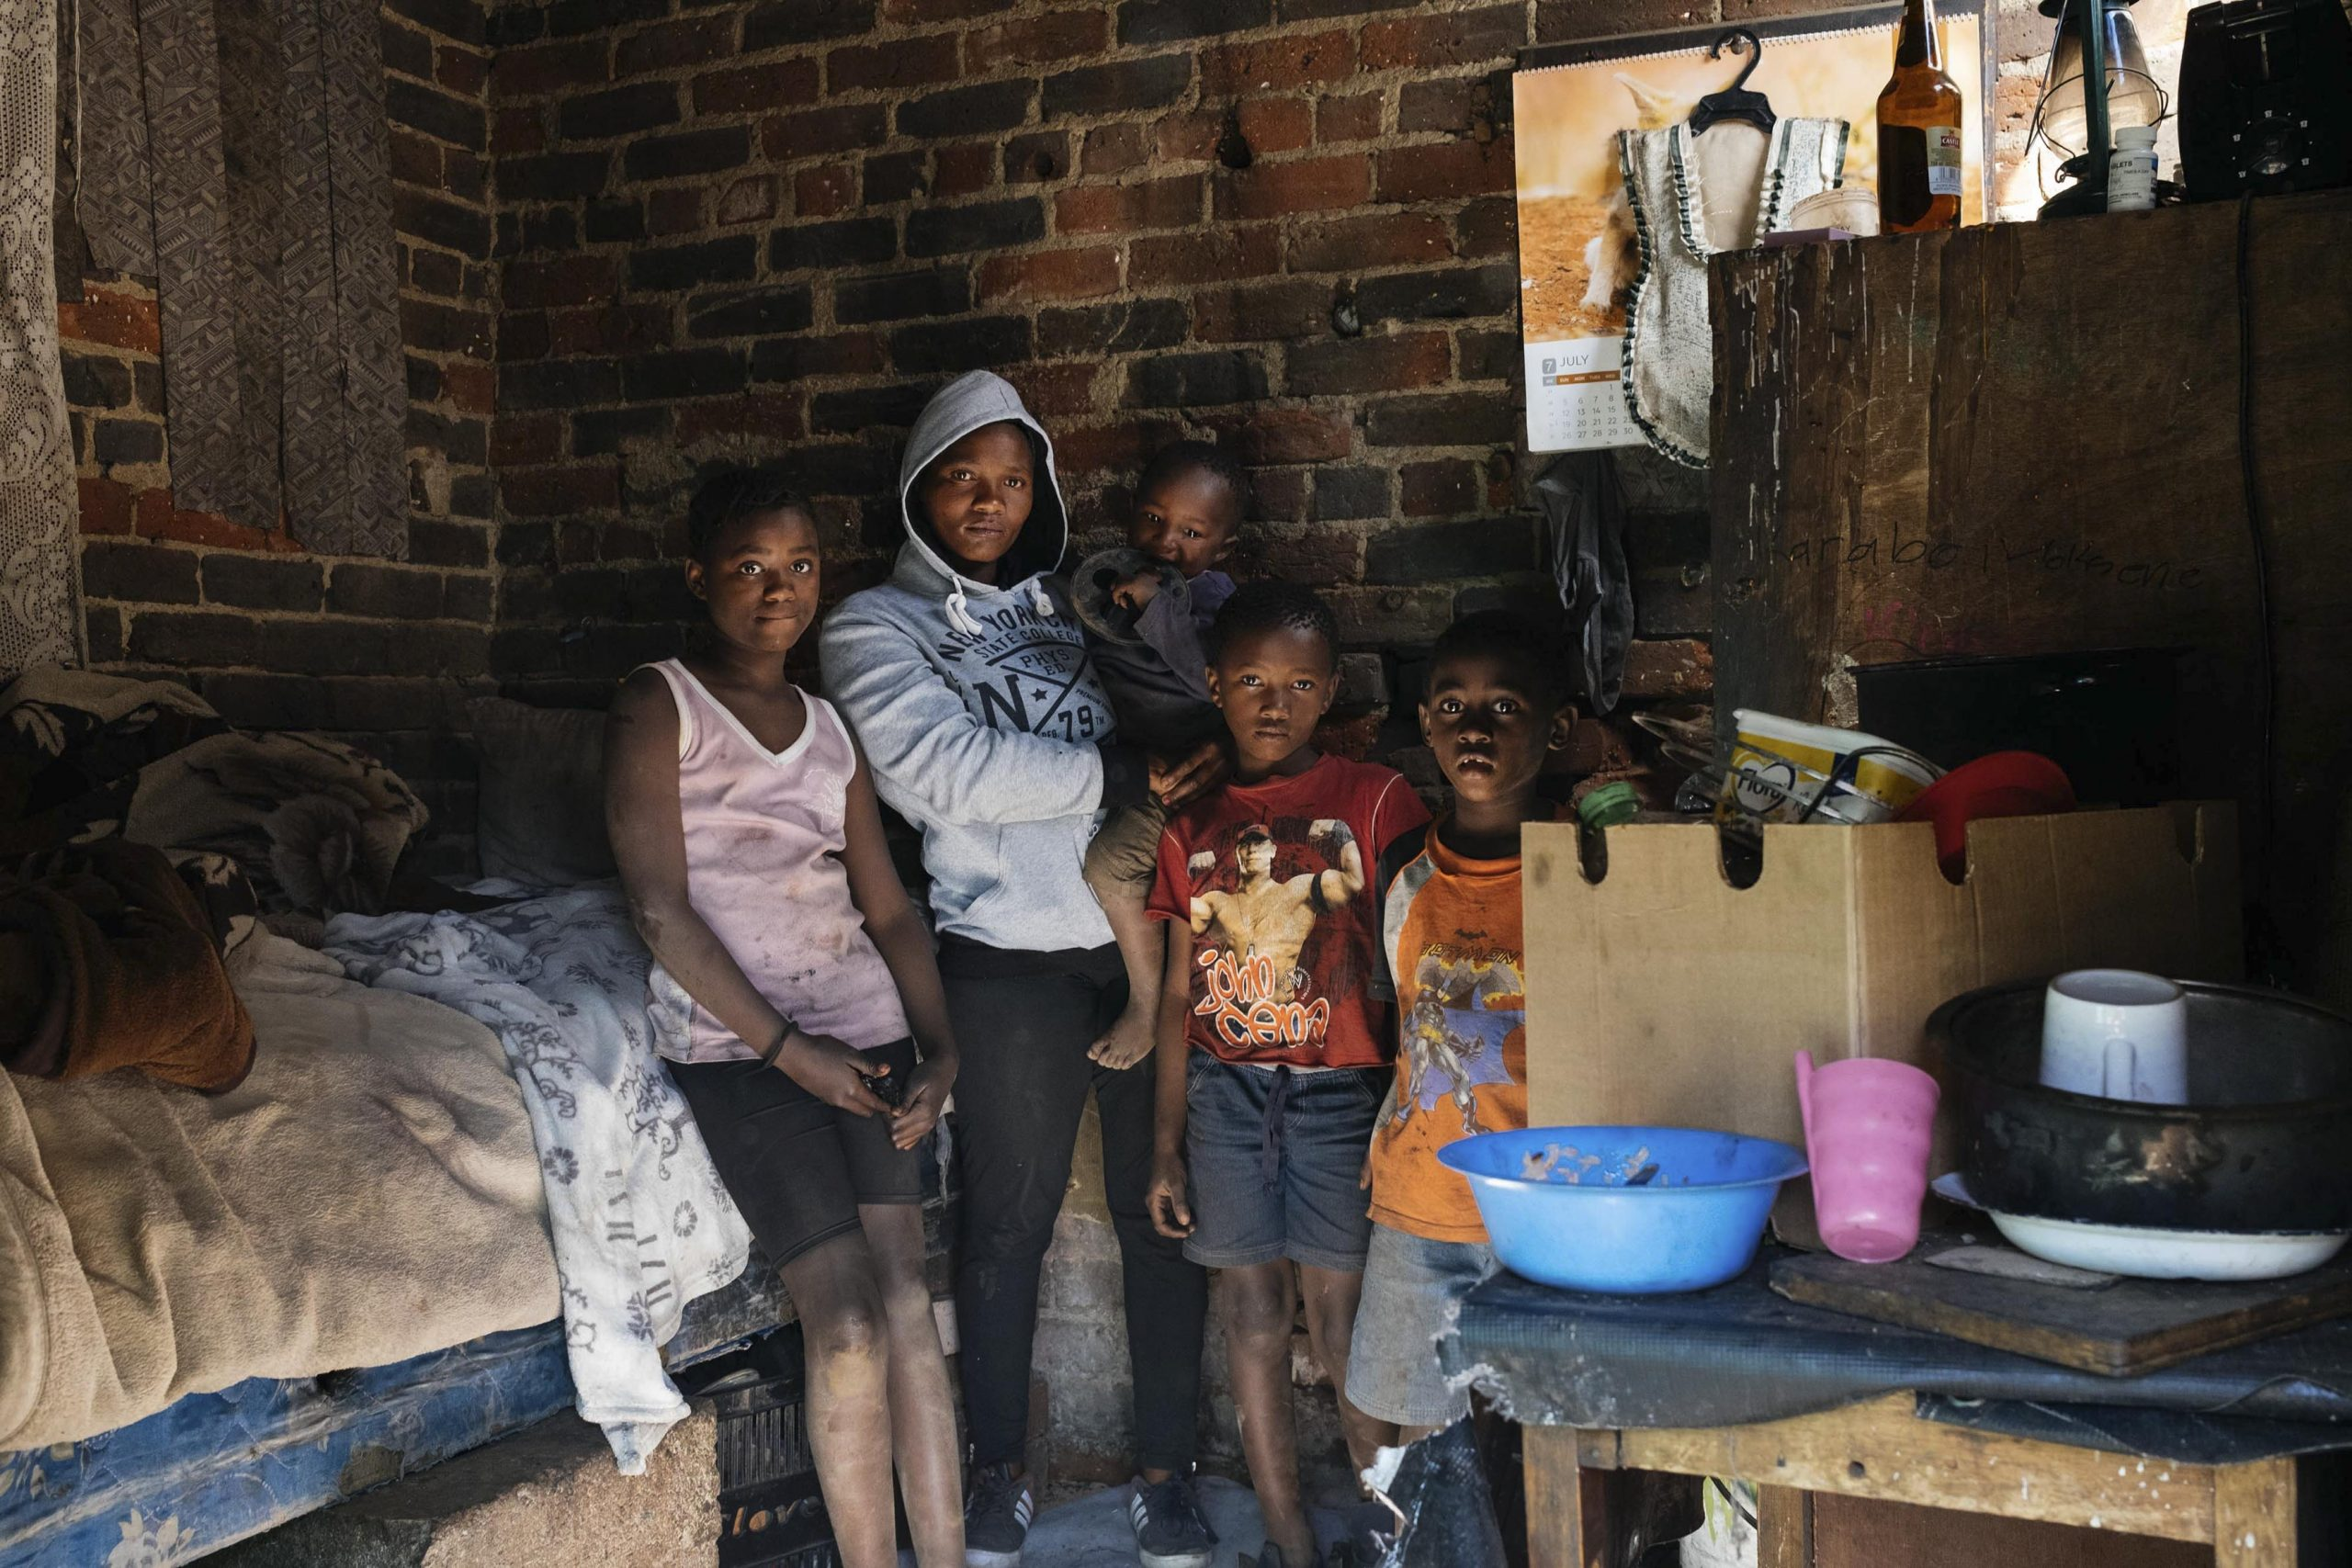 16 July 2020: Mpho Mokoena, 28, with her children, from left, Karabo, Kgotso, Kutlwana and Thumelo in their single-room apartment in Johannesburg's inner city. Mokoena shares the single bed with her boyfriend and the children sleep on the floor. Their building has no running water or toilets, making regular hand washing and general hygiene challenging.